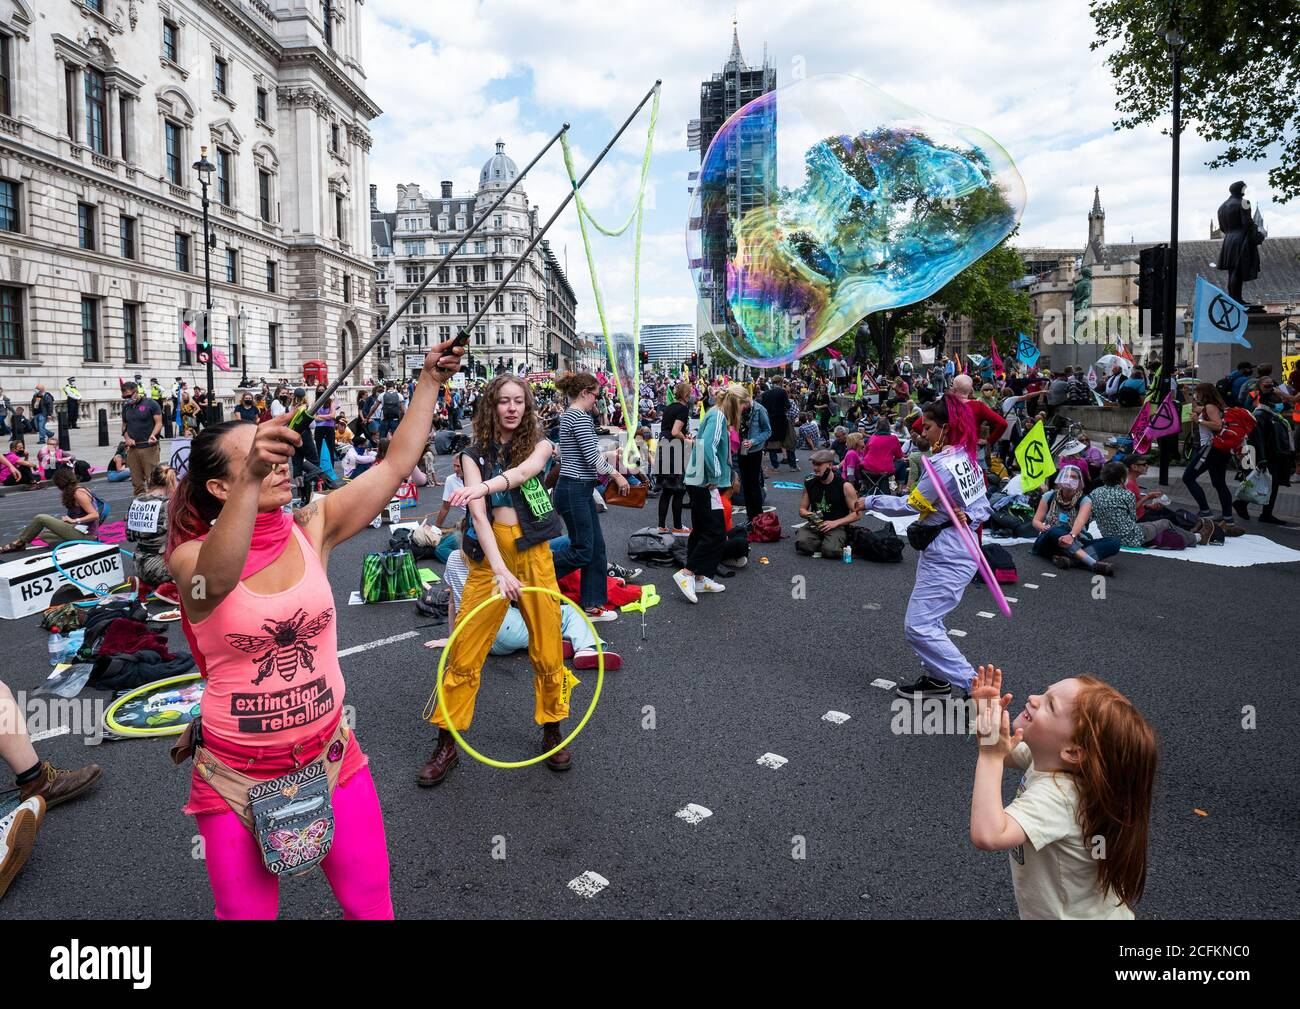 westminster-london-uk-1st-september-2020-rebellion-extinction-london-protest-first-of-10-days-of-planned-climate-change-actions-earlier-xr-protestors-had-marched-with-placards-and-banners-from-trafalgar-square-and-occupied-parliament-square-and-the-roads-encircling-it-protestors-were-calling-on-parliament-to-back-the-climate-and-ecological-emergency-bill-cee-bill-as-time-progressed-the-metropolitan-police-made-arrests-clearing-the-area-in-front-of-parliament-and-some-protesters-started-to-leave-multiple-protests-were-planned-to-take-place-around-the-uk-credit-stephen-bellalamy-2CFKNC0.jpg